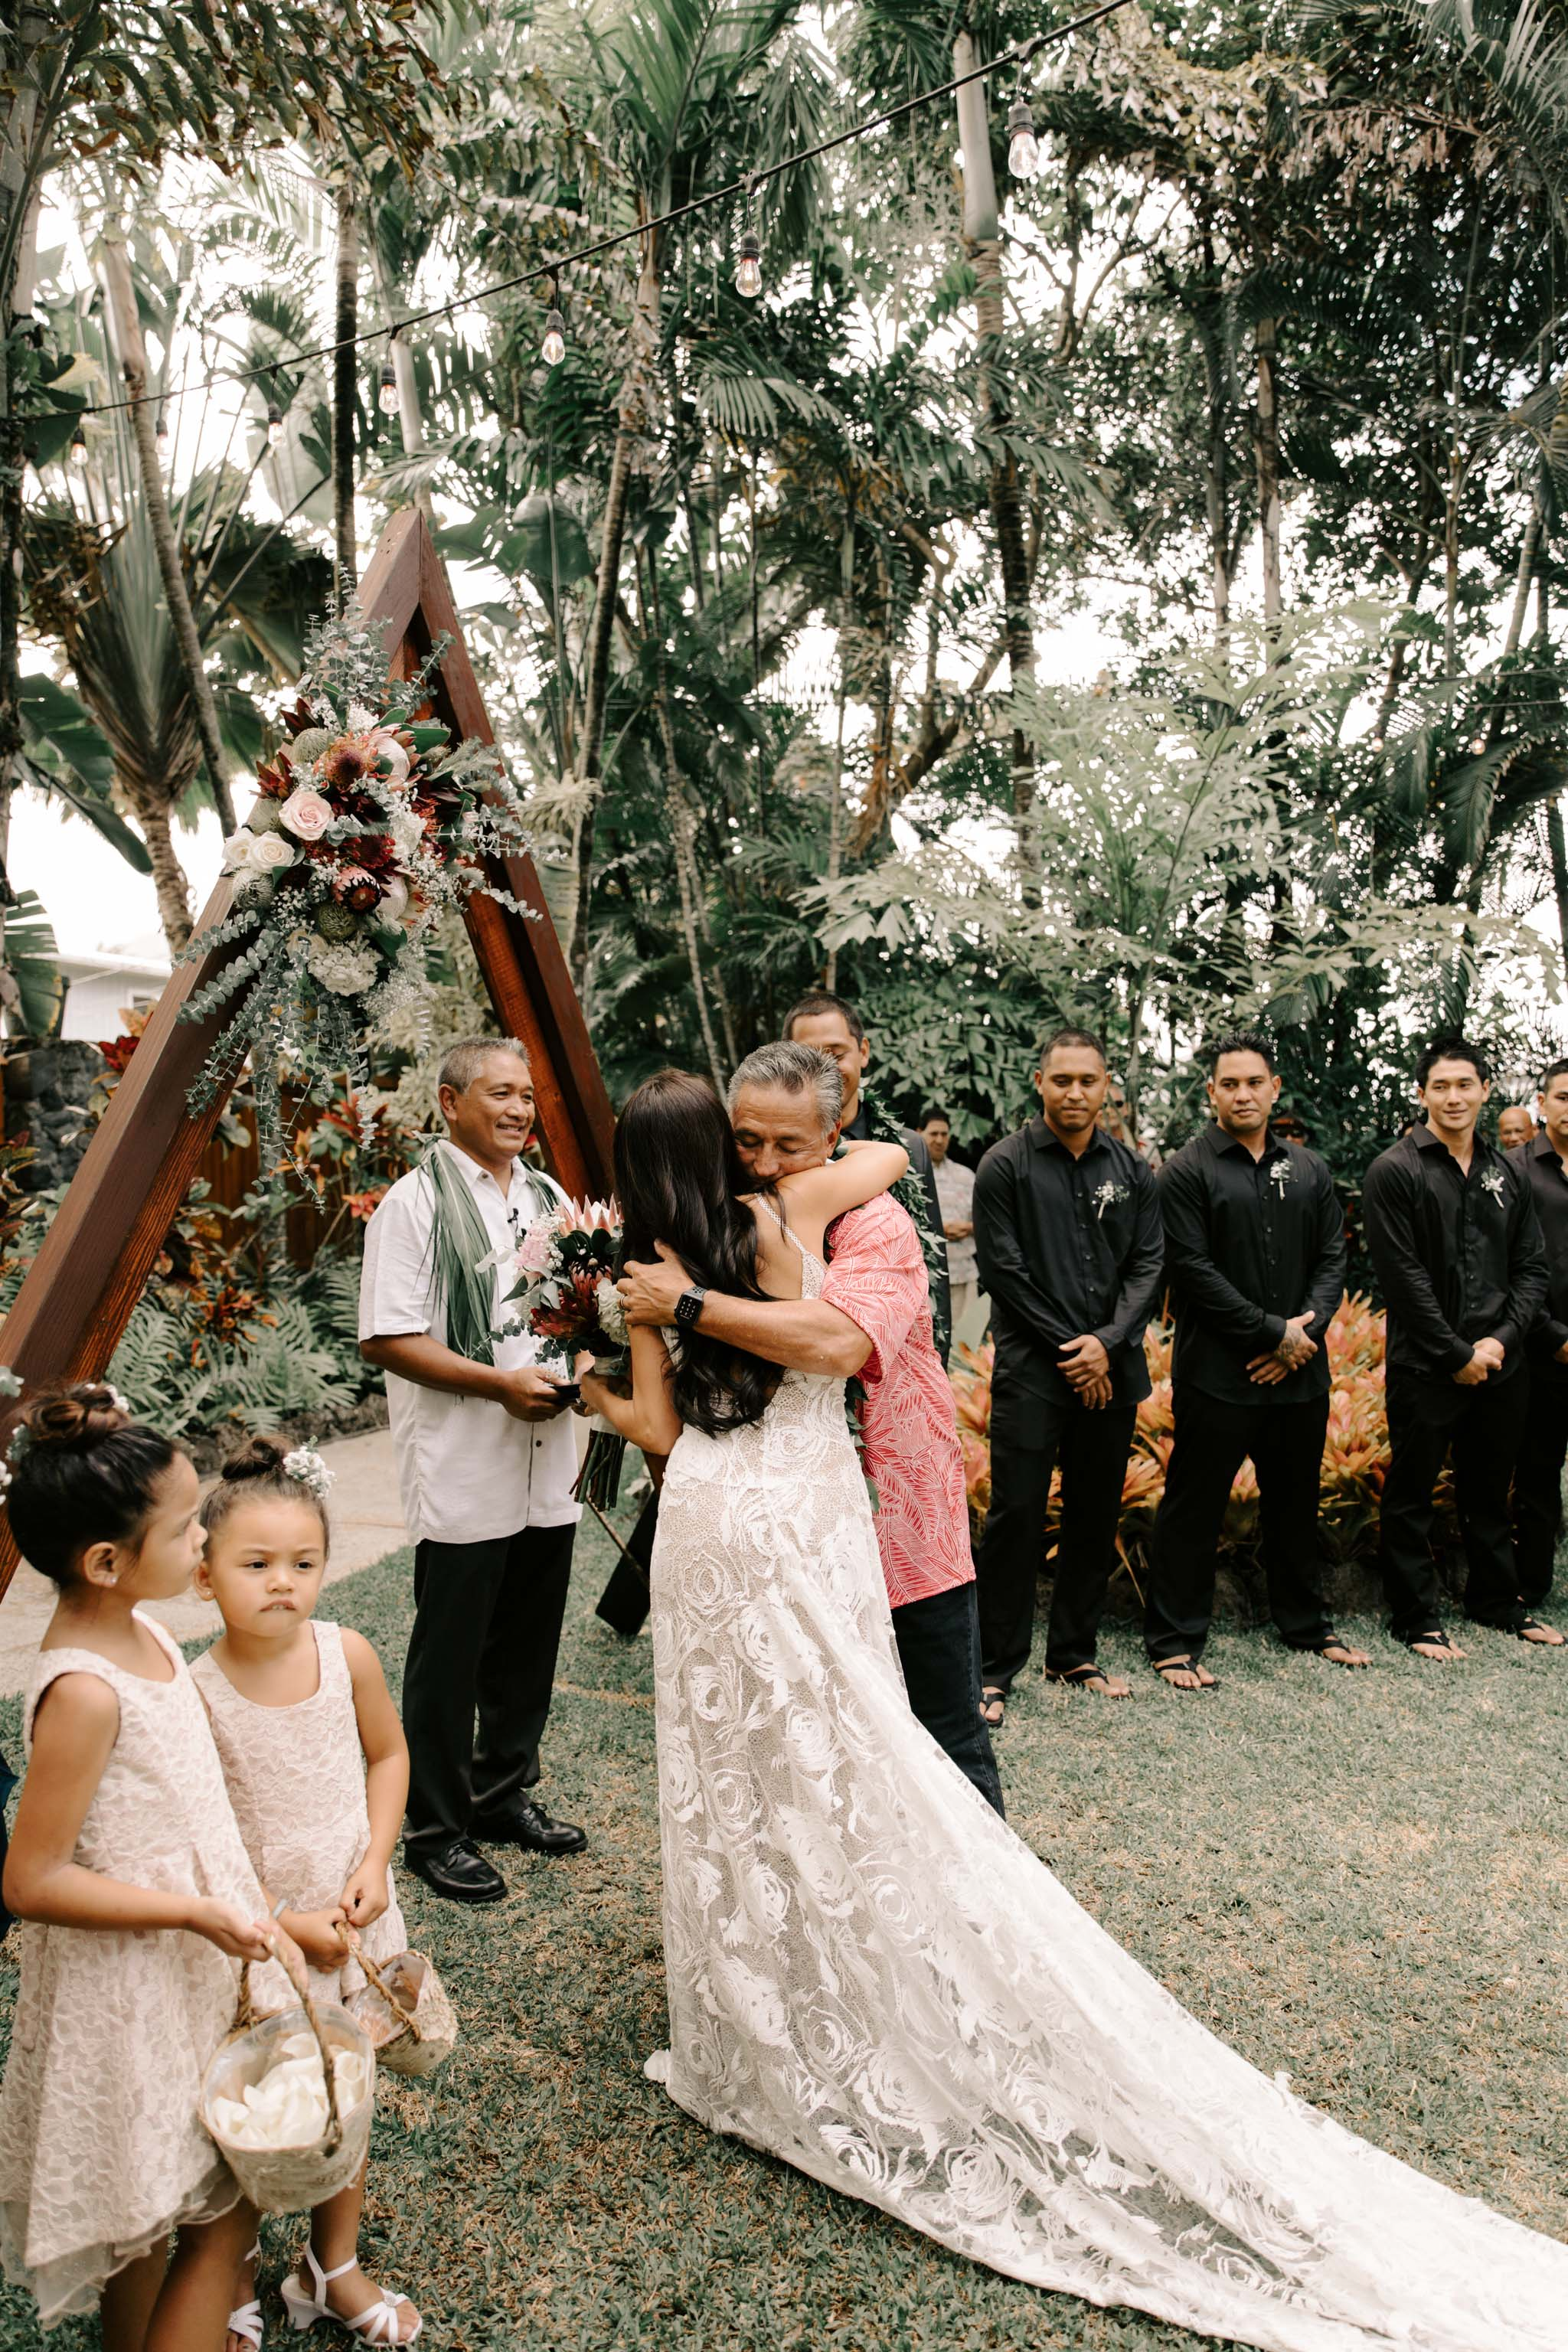 Father giving his daughter away at her wedding - Hale Koa Phineas Estate Wedding By Oahu Wedding Photographer Desiree Leilani